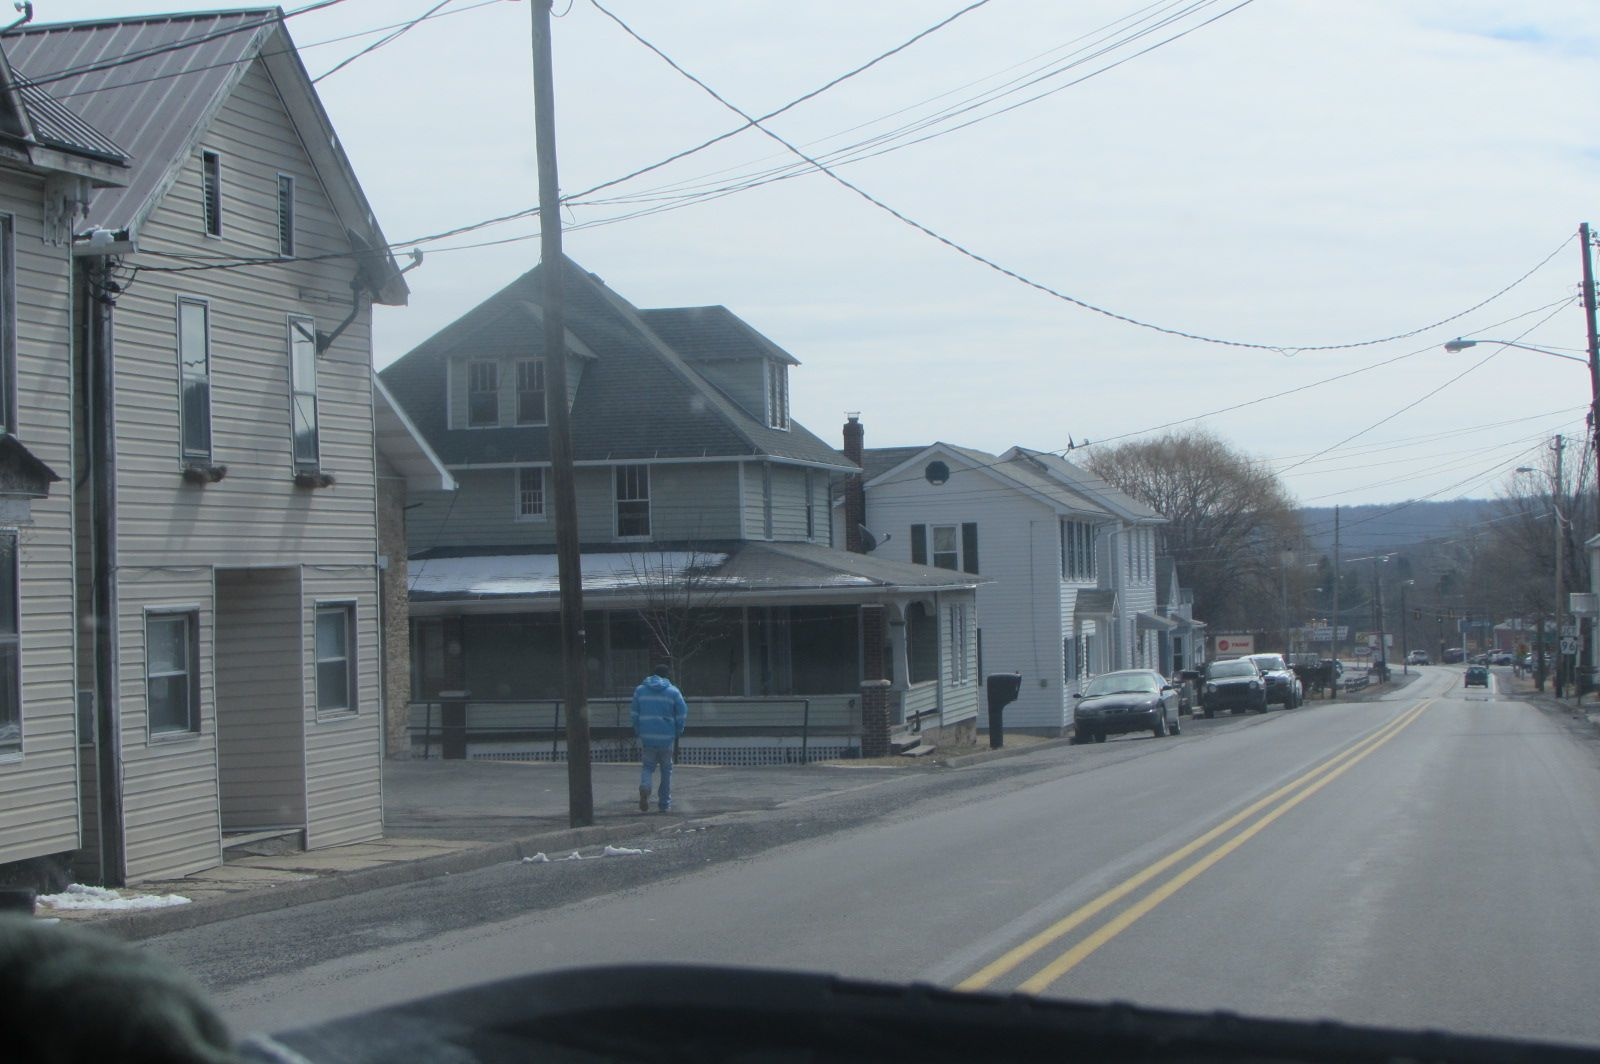 Pleasantville In 2019 Street View Pennsylvania Street